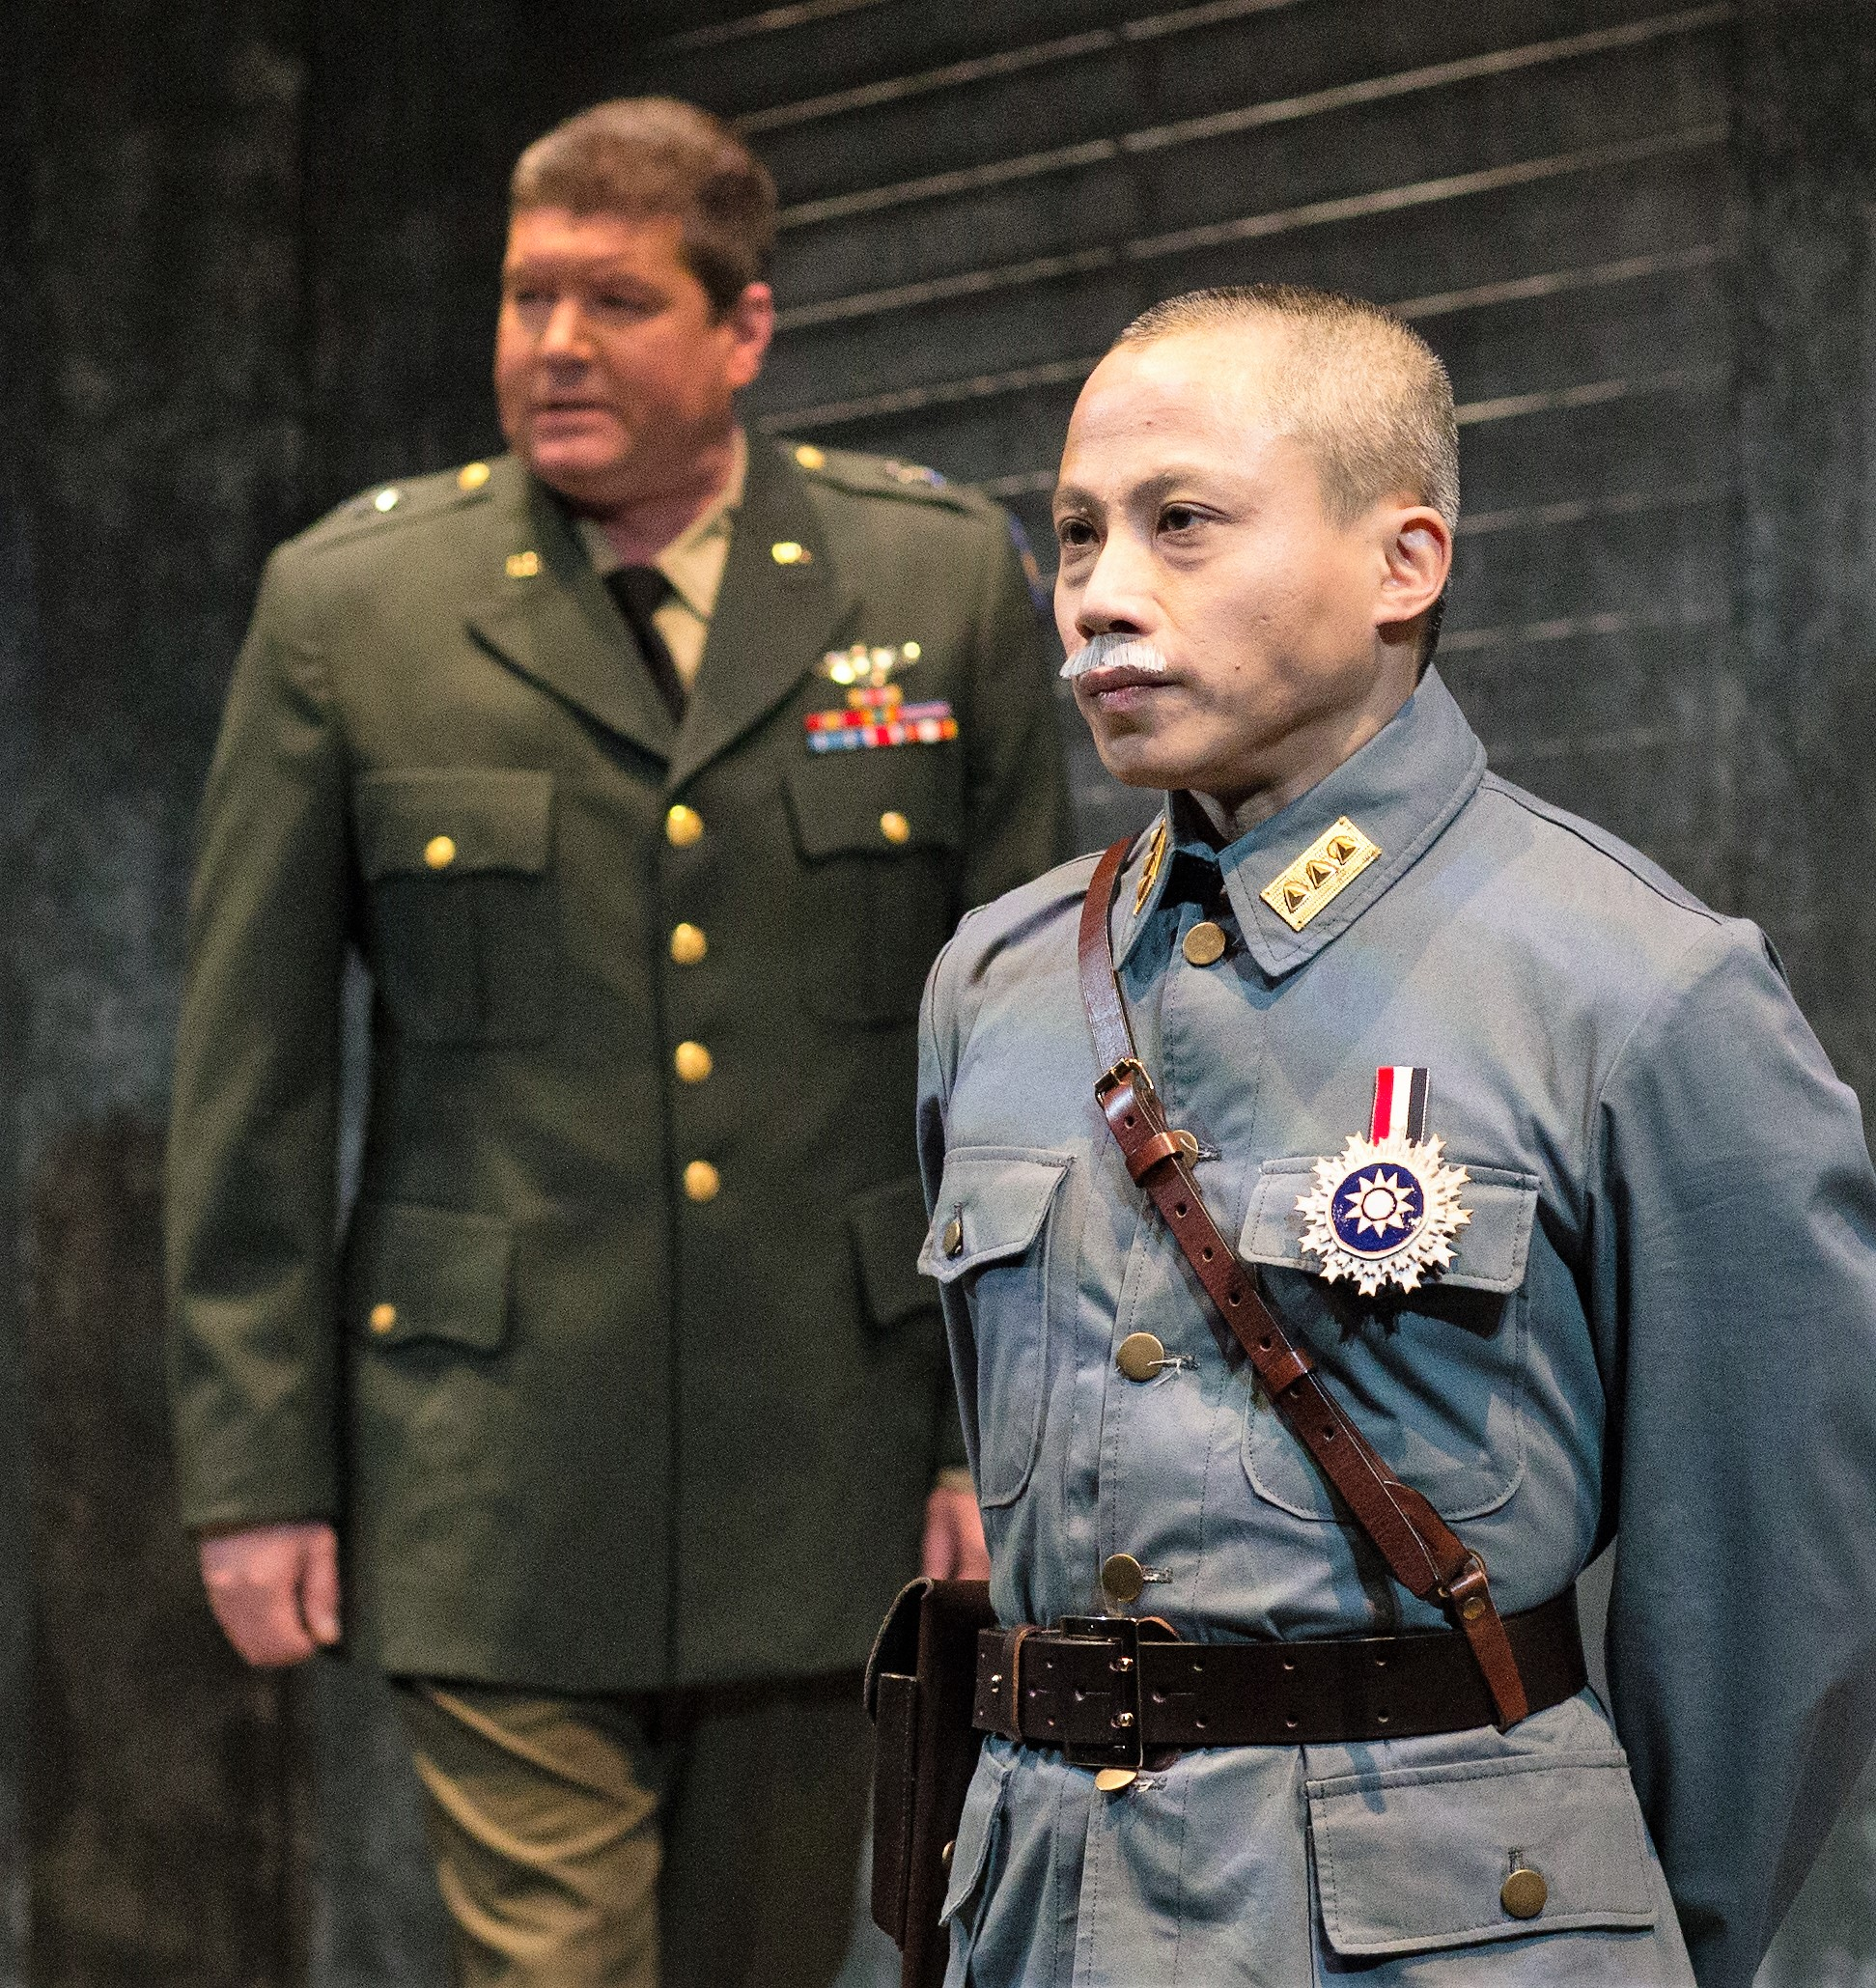 Dinh James Doan (foreground) as Chiang Kai-shek and Jonathan Miles as Van Holt. Top: Ying Ying Li as Ava and Tim Liu as Walter in  Incident at Hidden Temple . Photos by Jonathan Quincy.